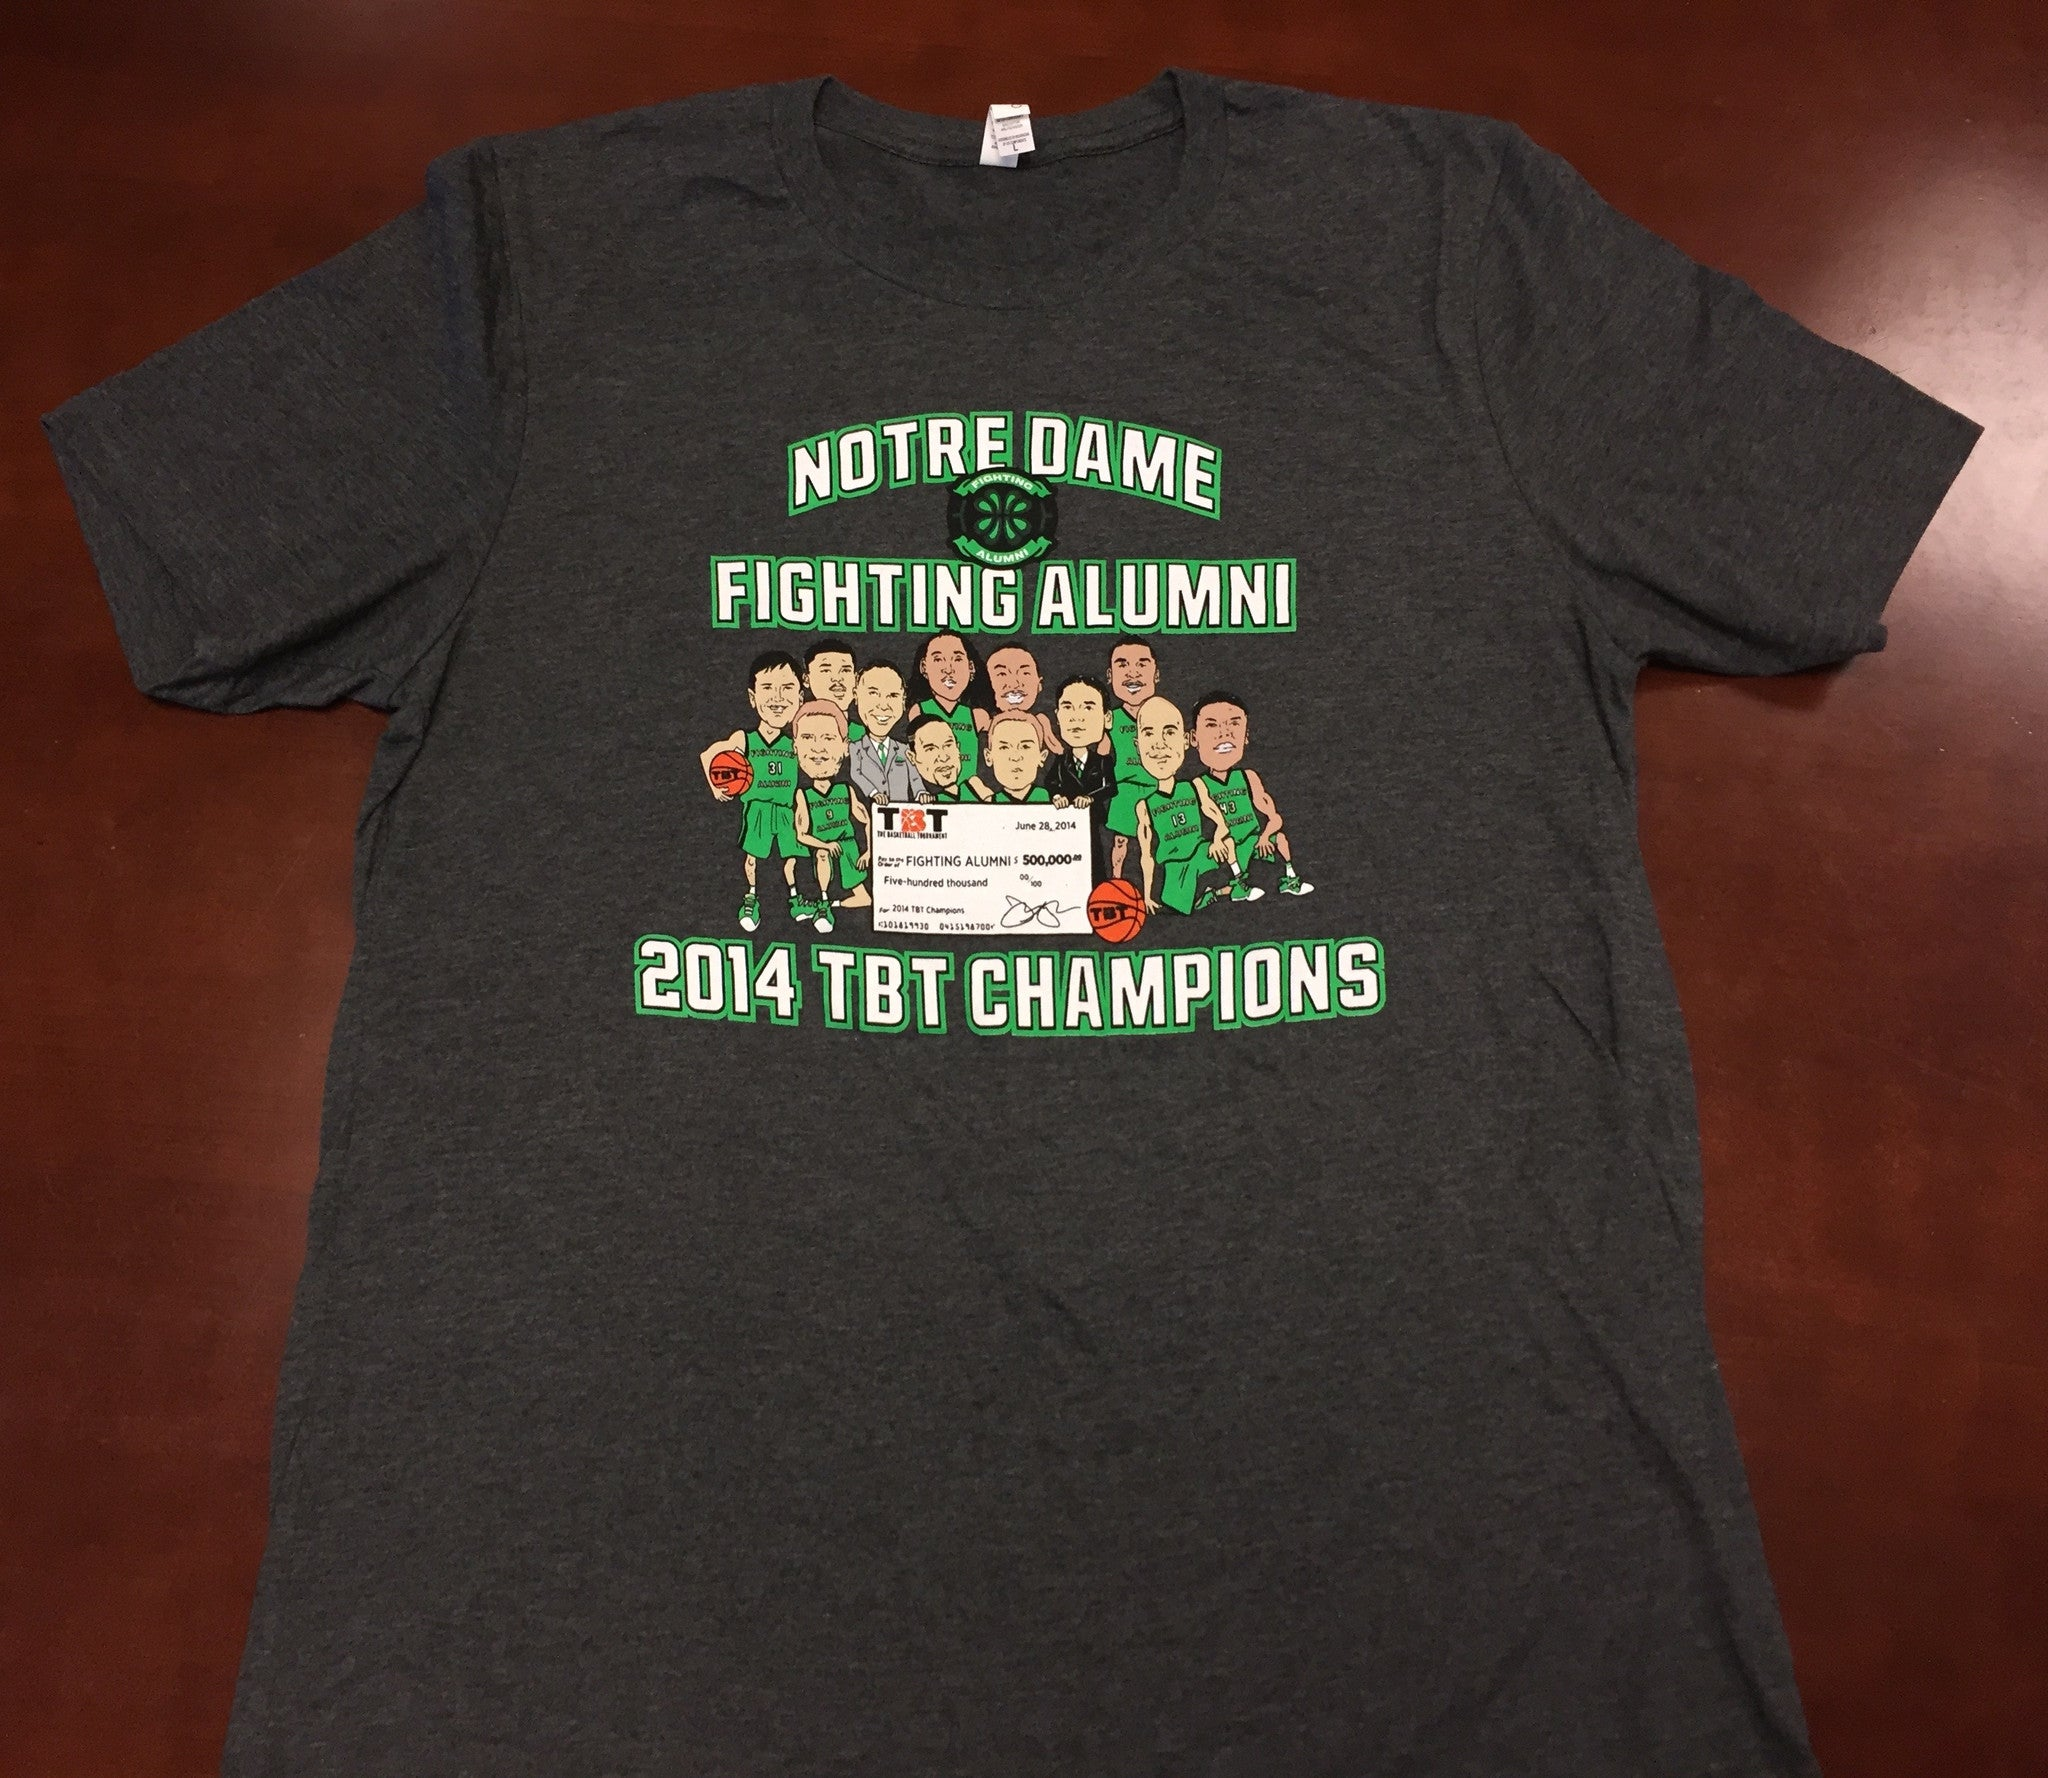 Notre Dame Fighting Alumni - 2014 TBT Champions Tee